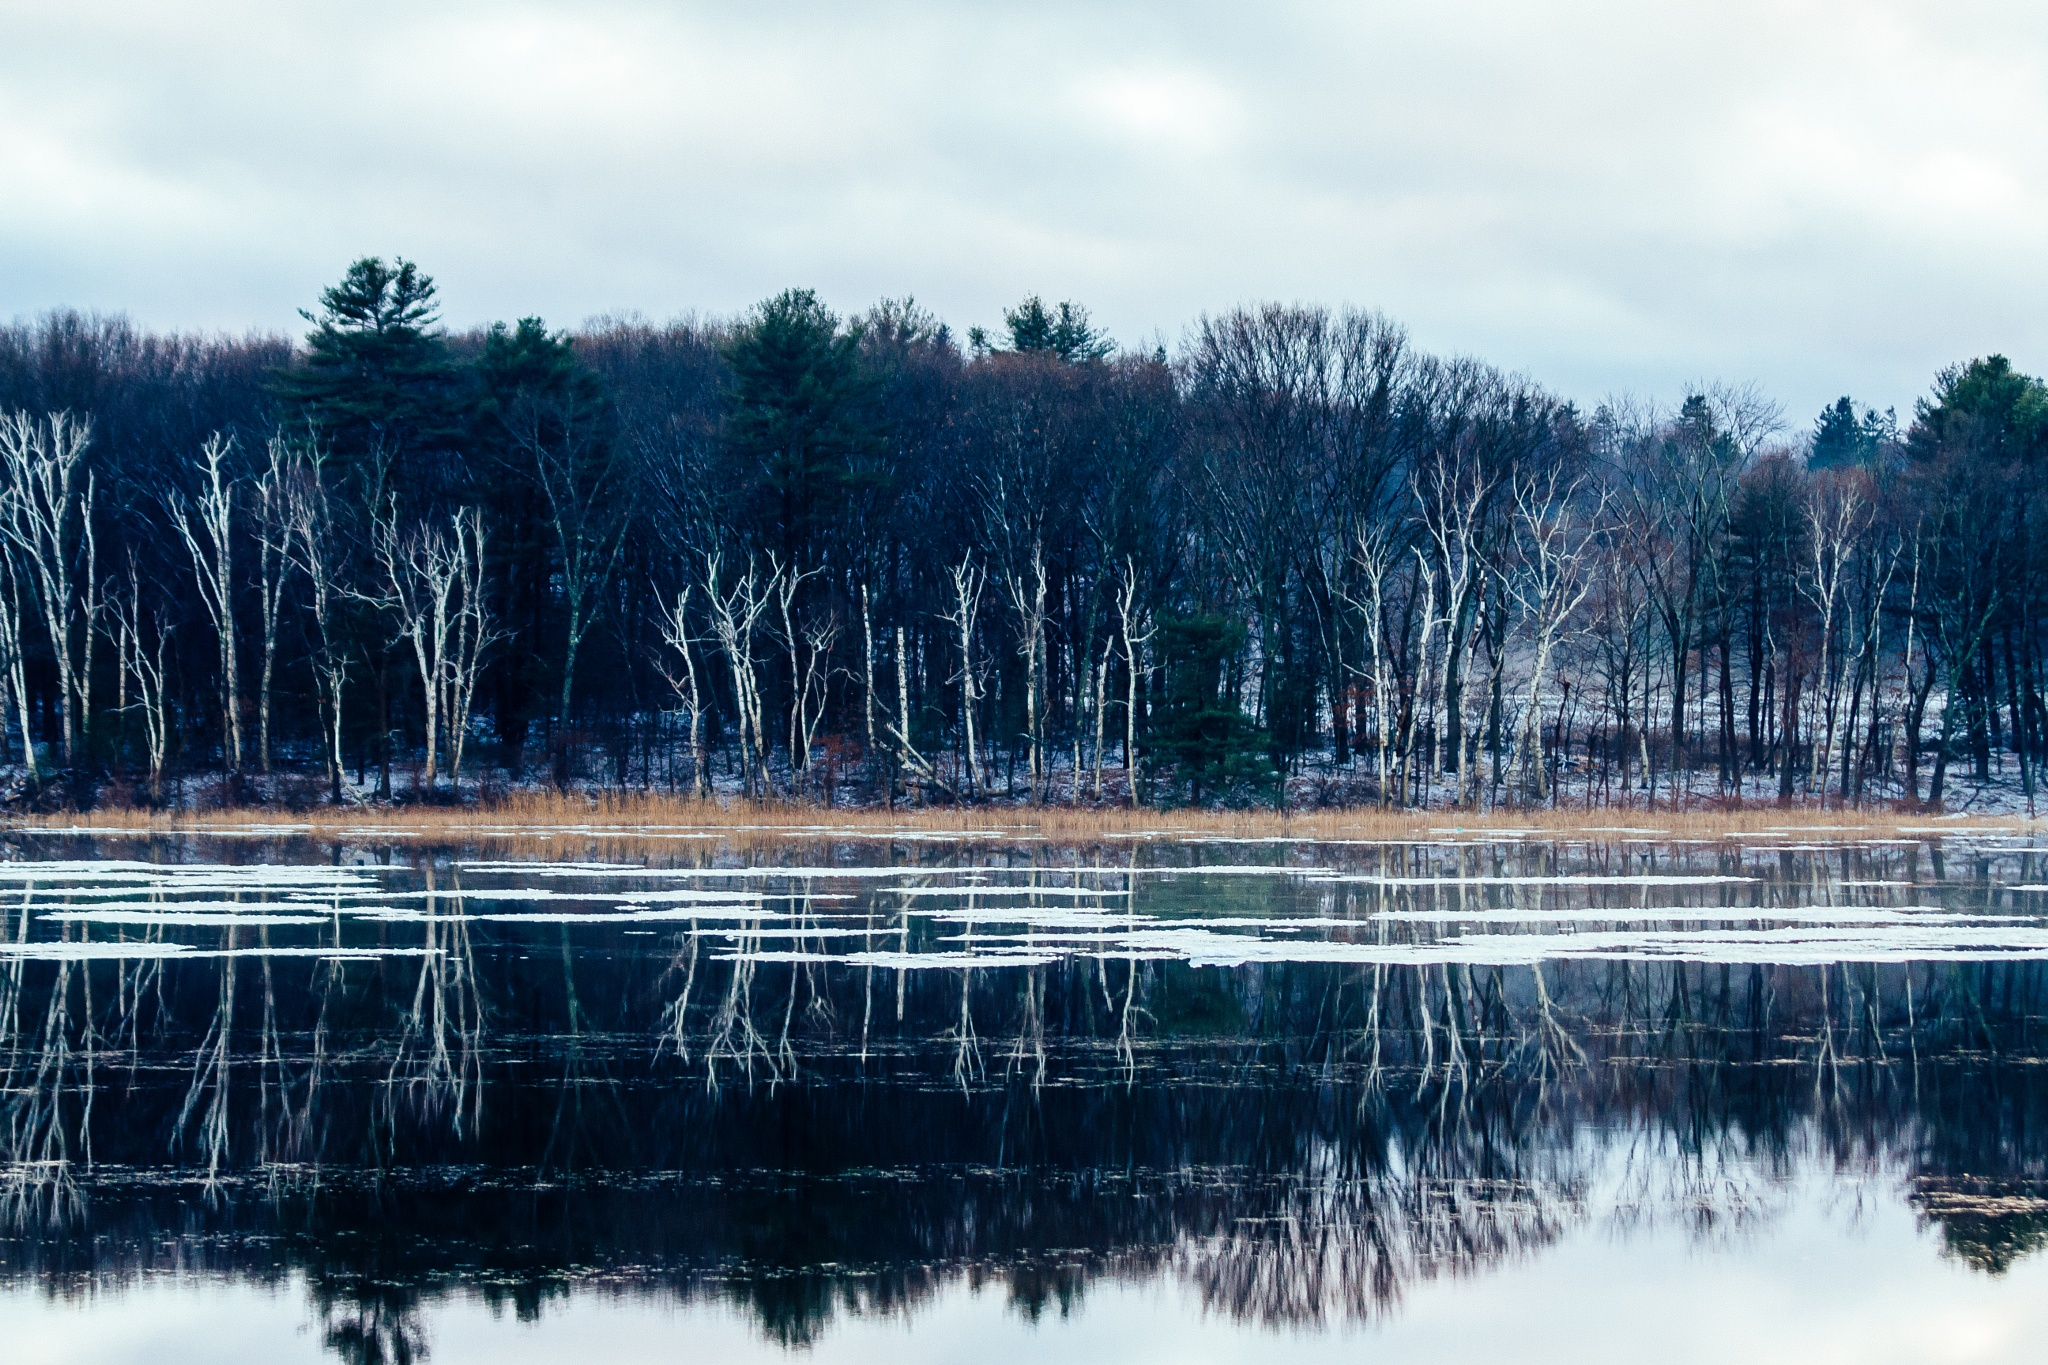 Merrimack River by Kay A. Ficht